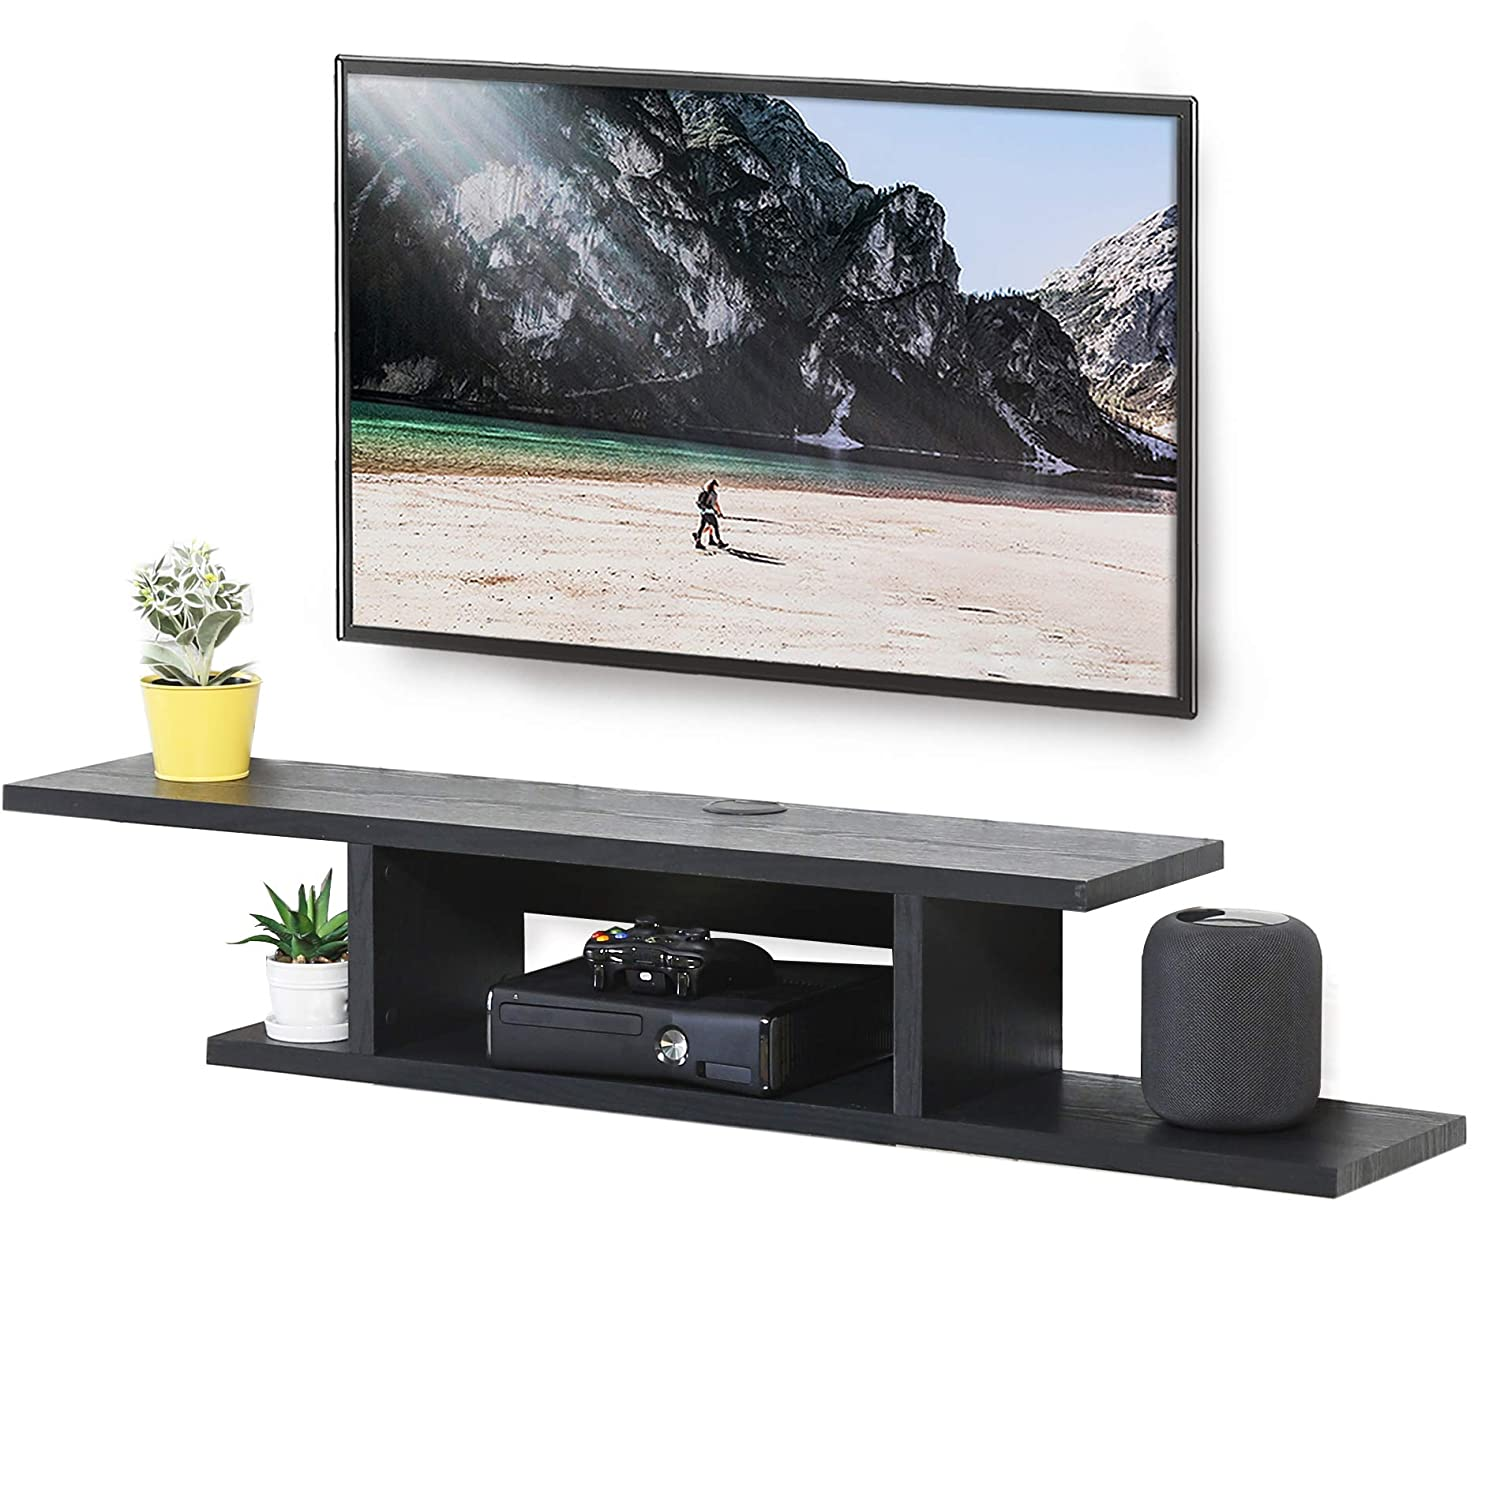 separation shoes 8c3f5 84175 FITUEYES Wall Mounted Media Console Floating TV Stand Component Shelf Black  Grain DS211801WB